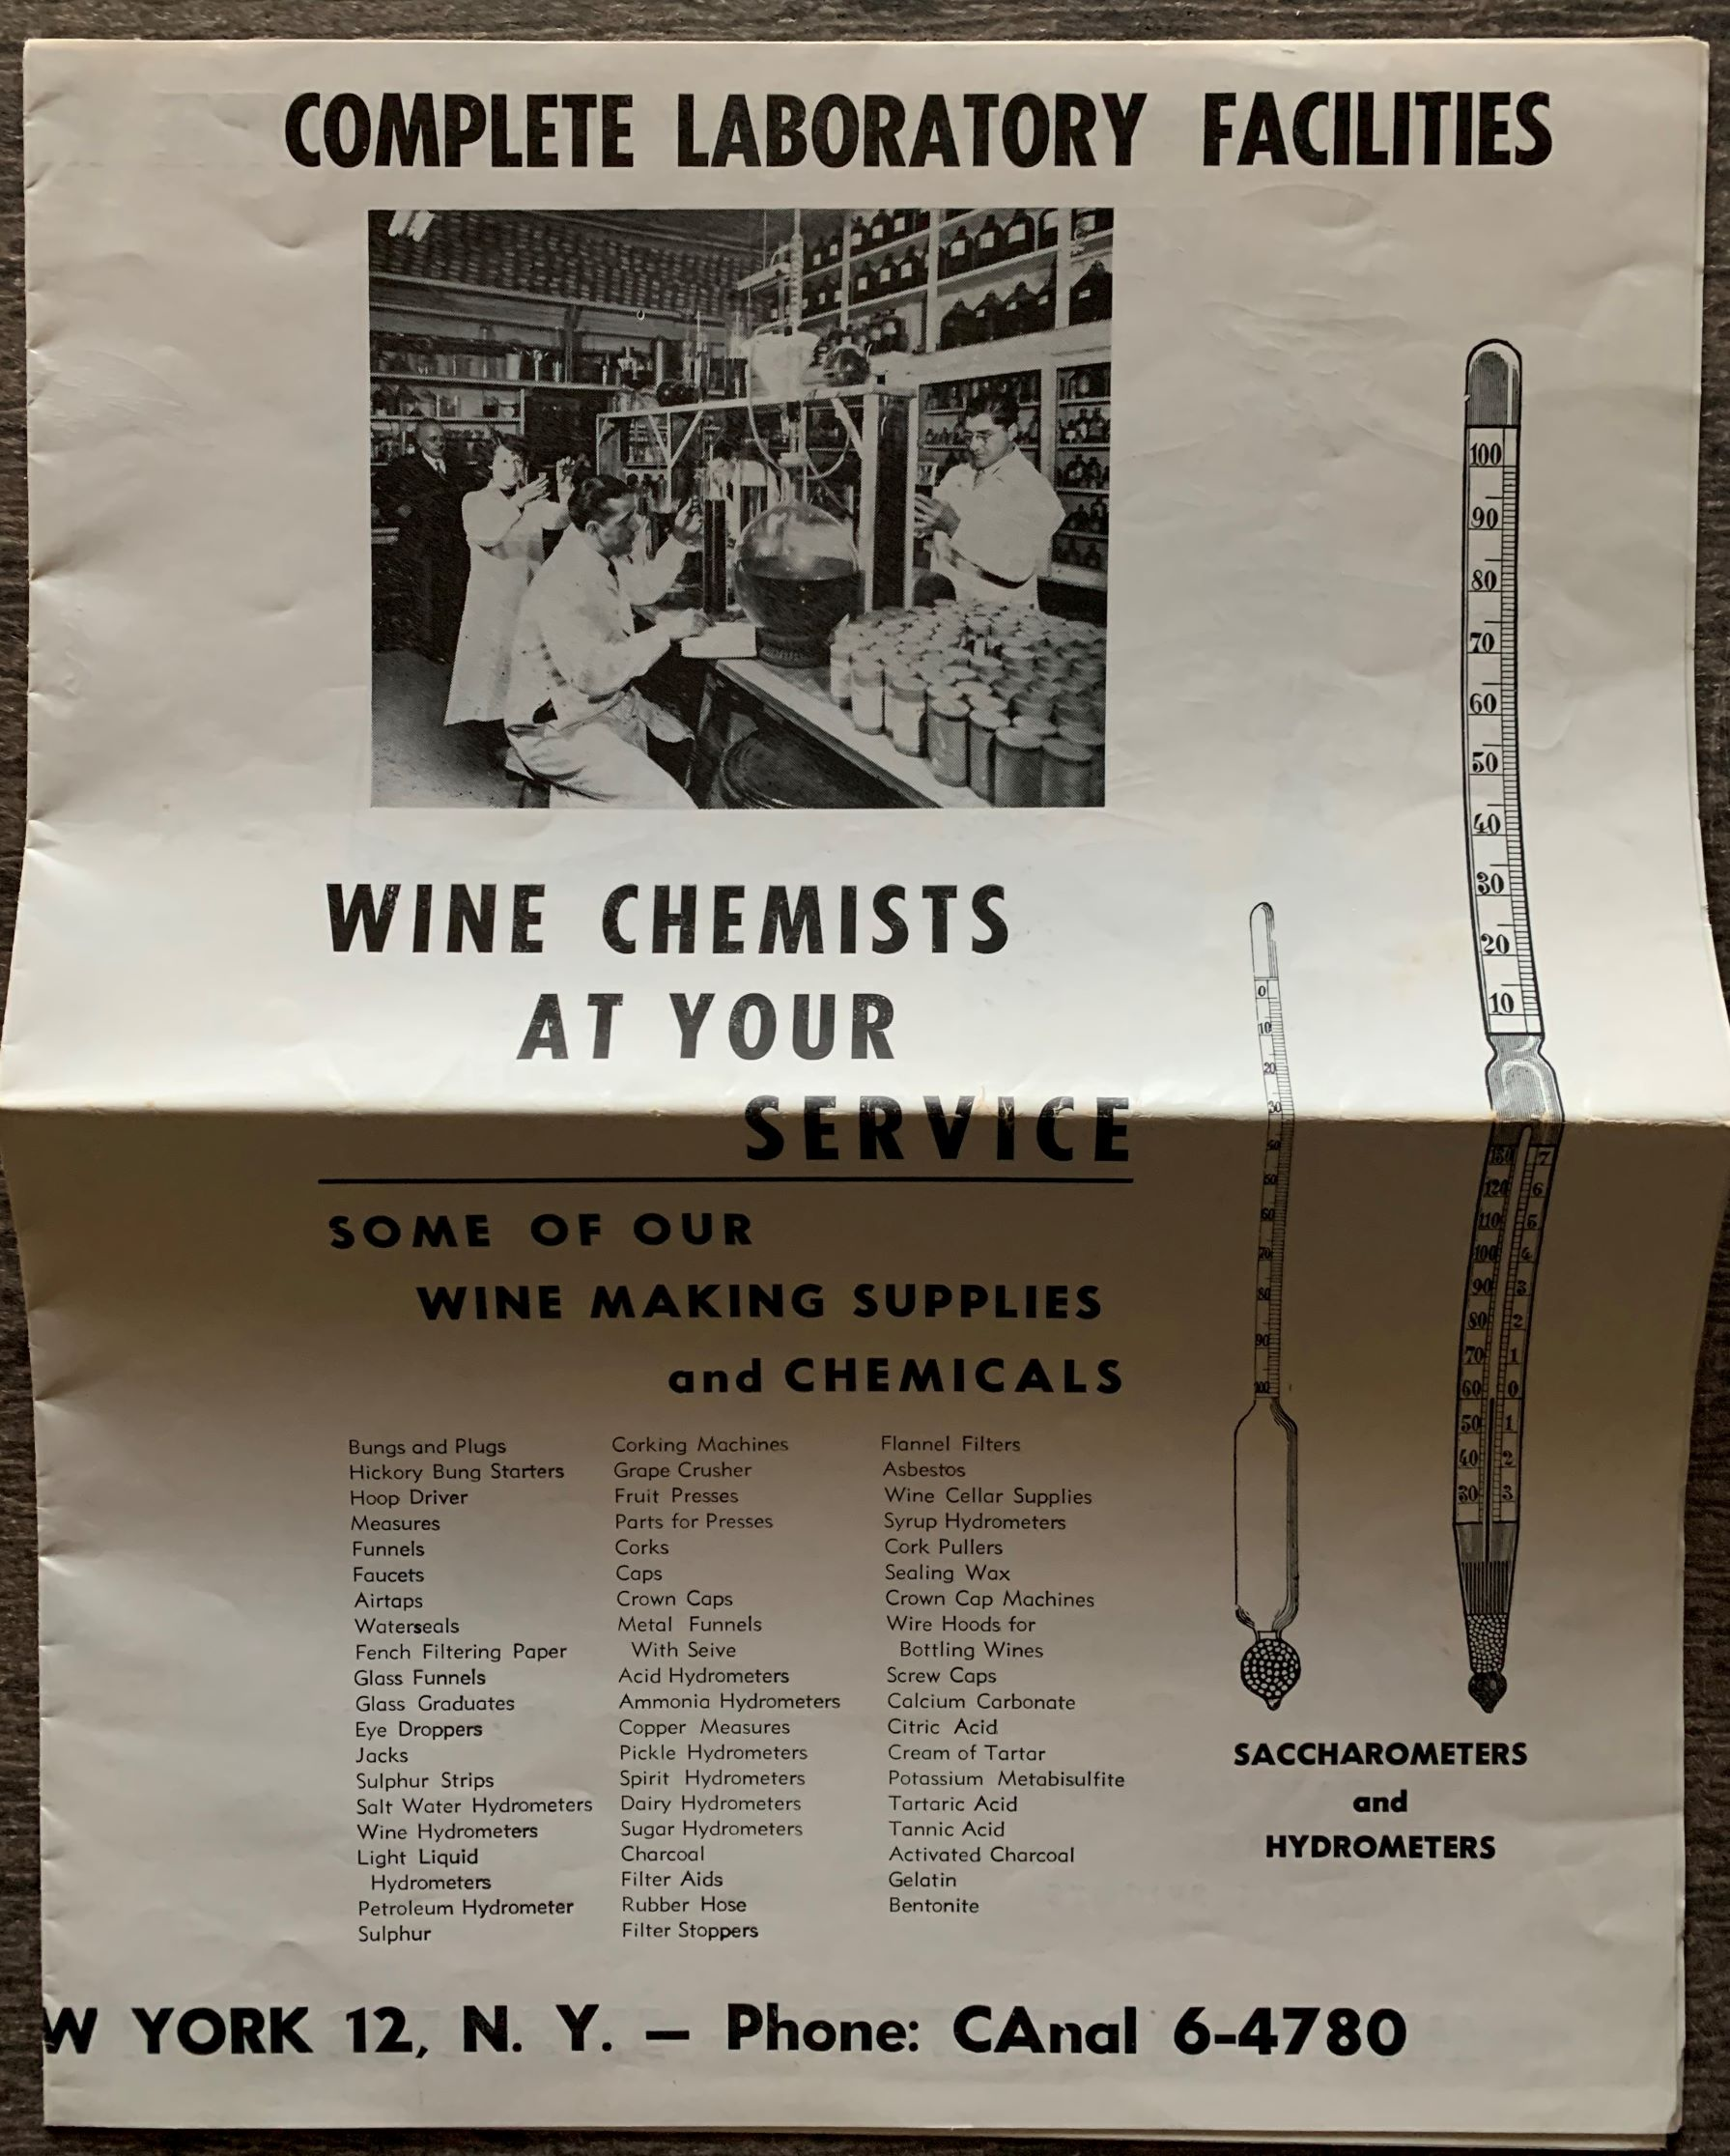 Image for Milan Laboratory, Complete Laboratory Facilities, Wine Chemists at Your Service.  Some of our Wine Making Supplies and Chemicals.